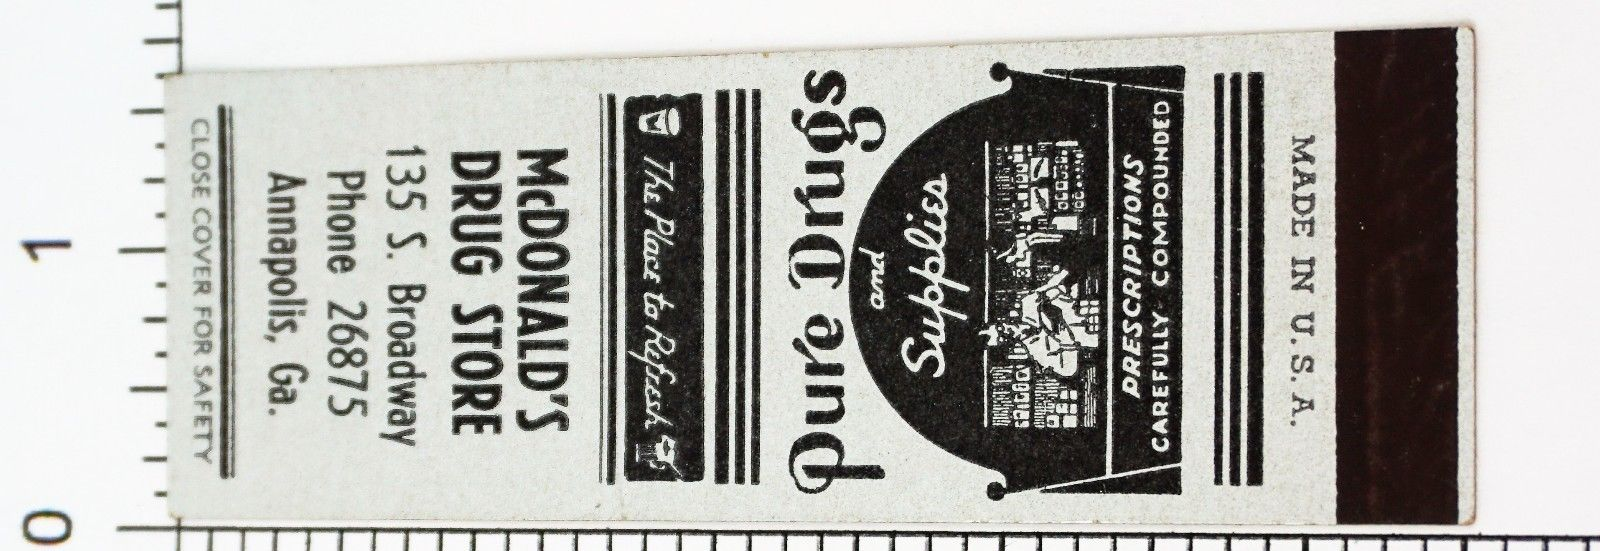 VTG 30'S 40'S DRUG STORE PHARMACY ADVERTISING MATCHBOOK MATCHES SAMPLE